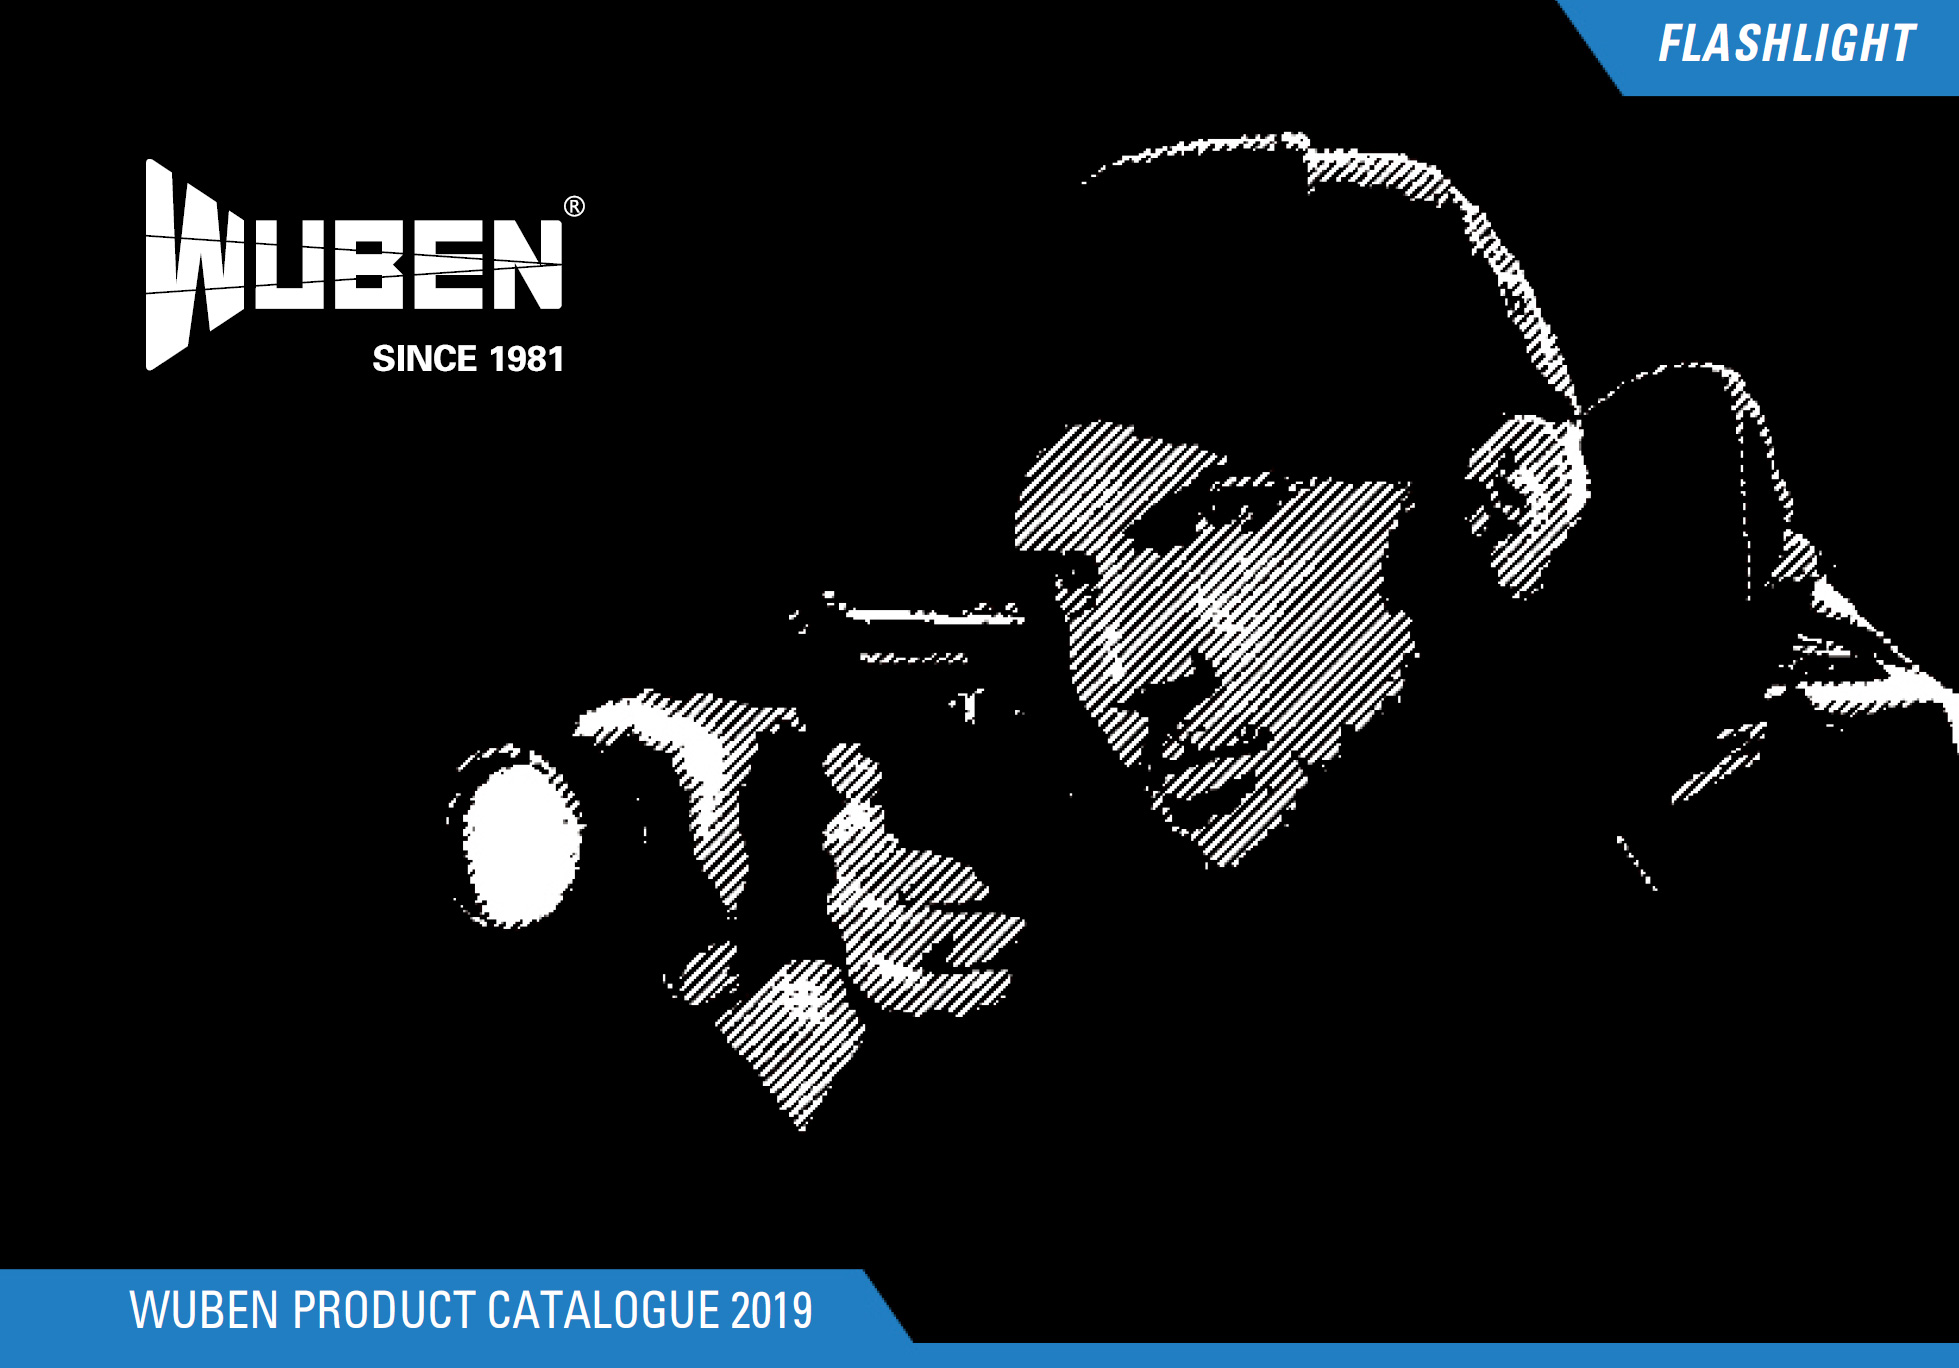 Wuben Torch Catalogue - 2019